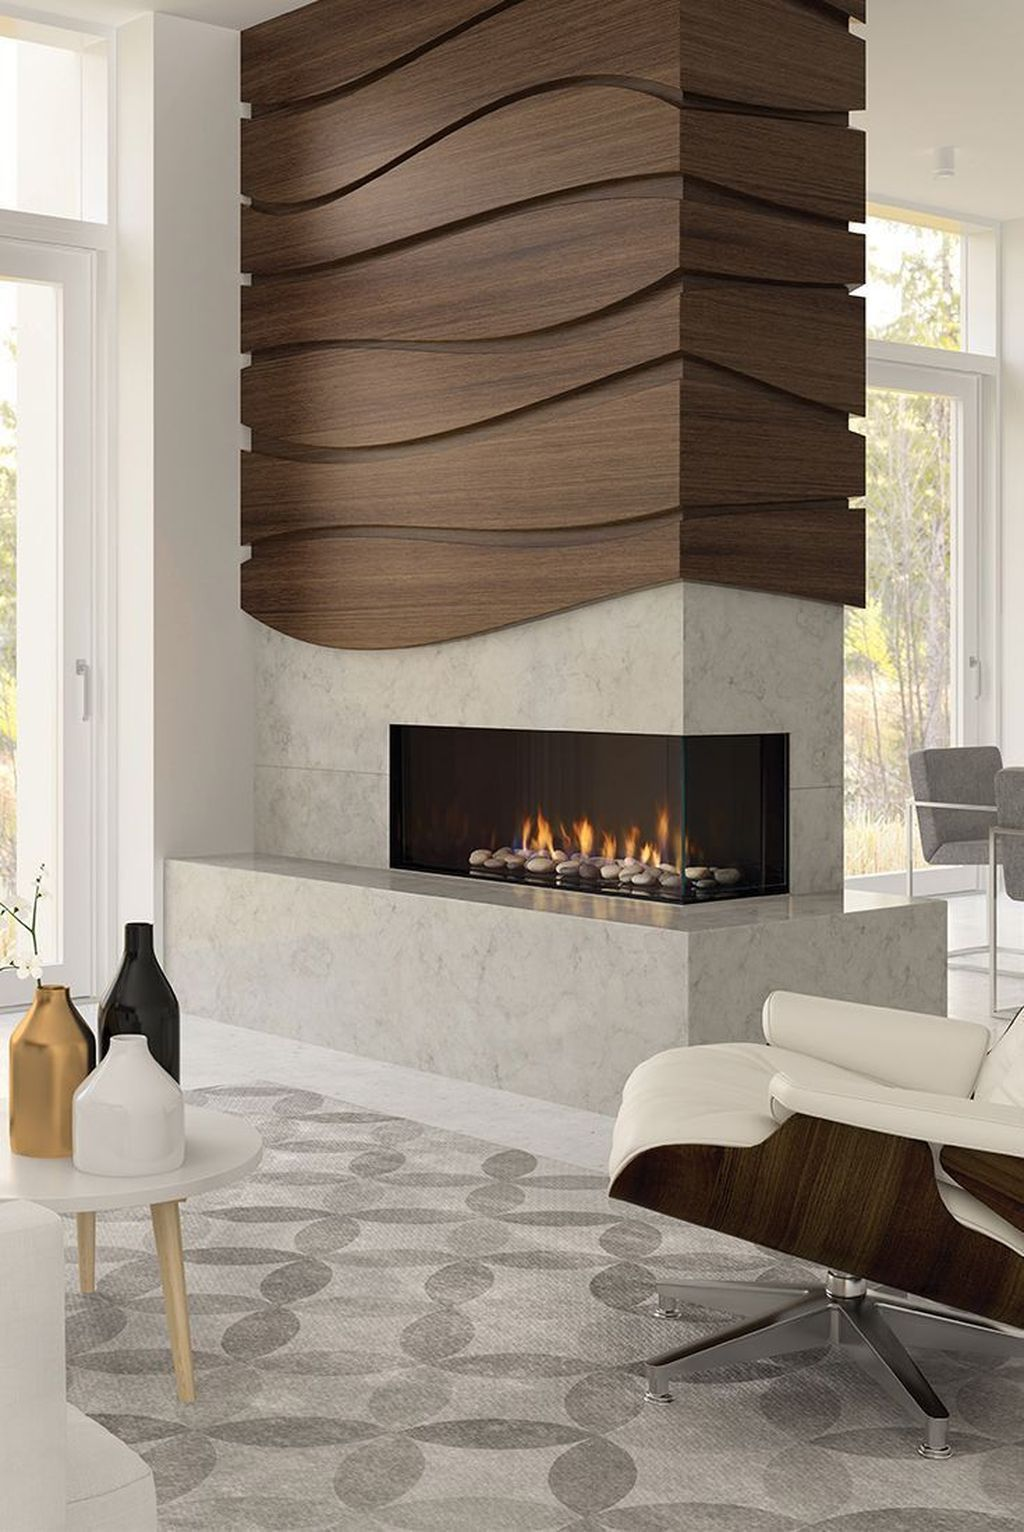 36 Lovely Tile Wall For Living Room Decorations In